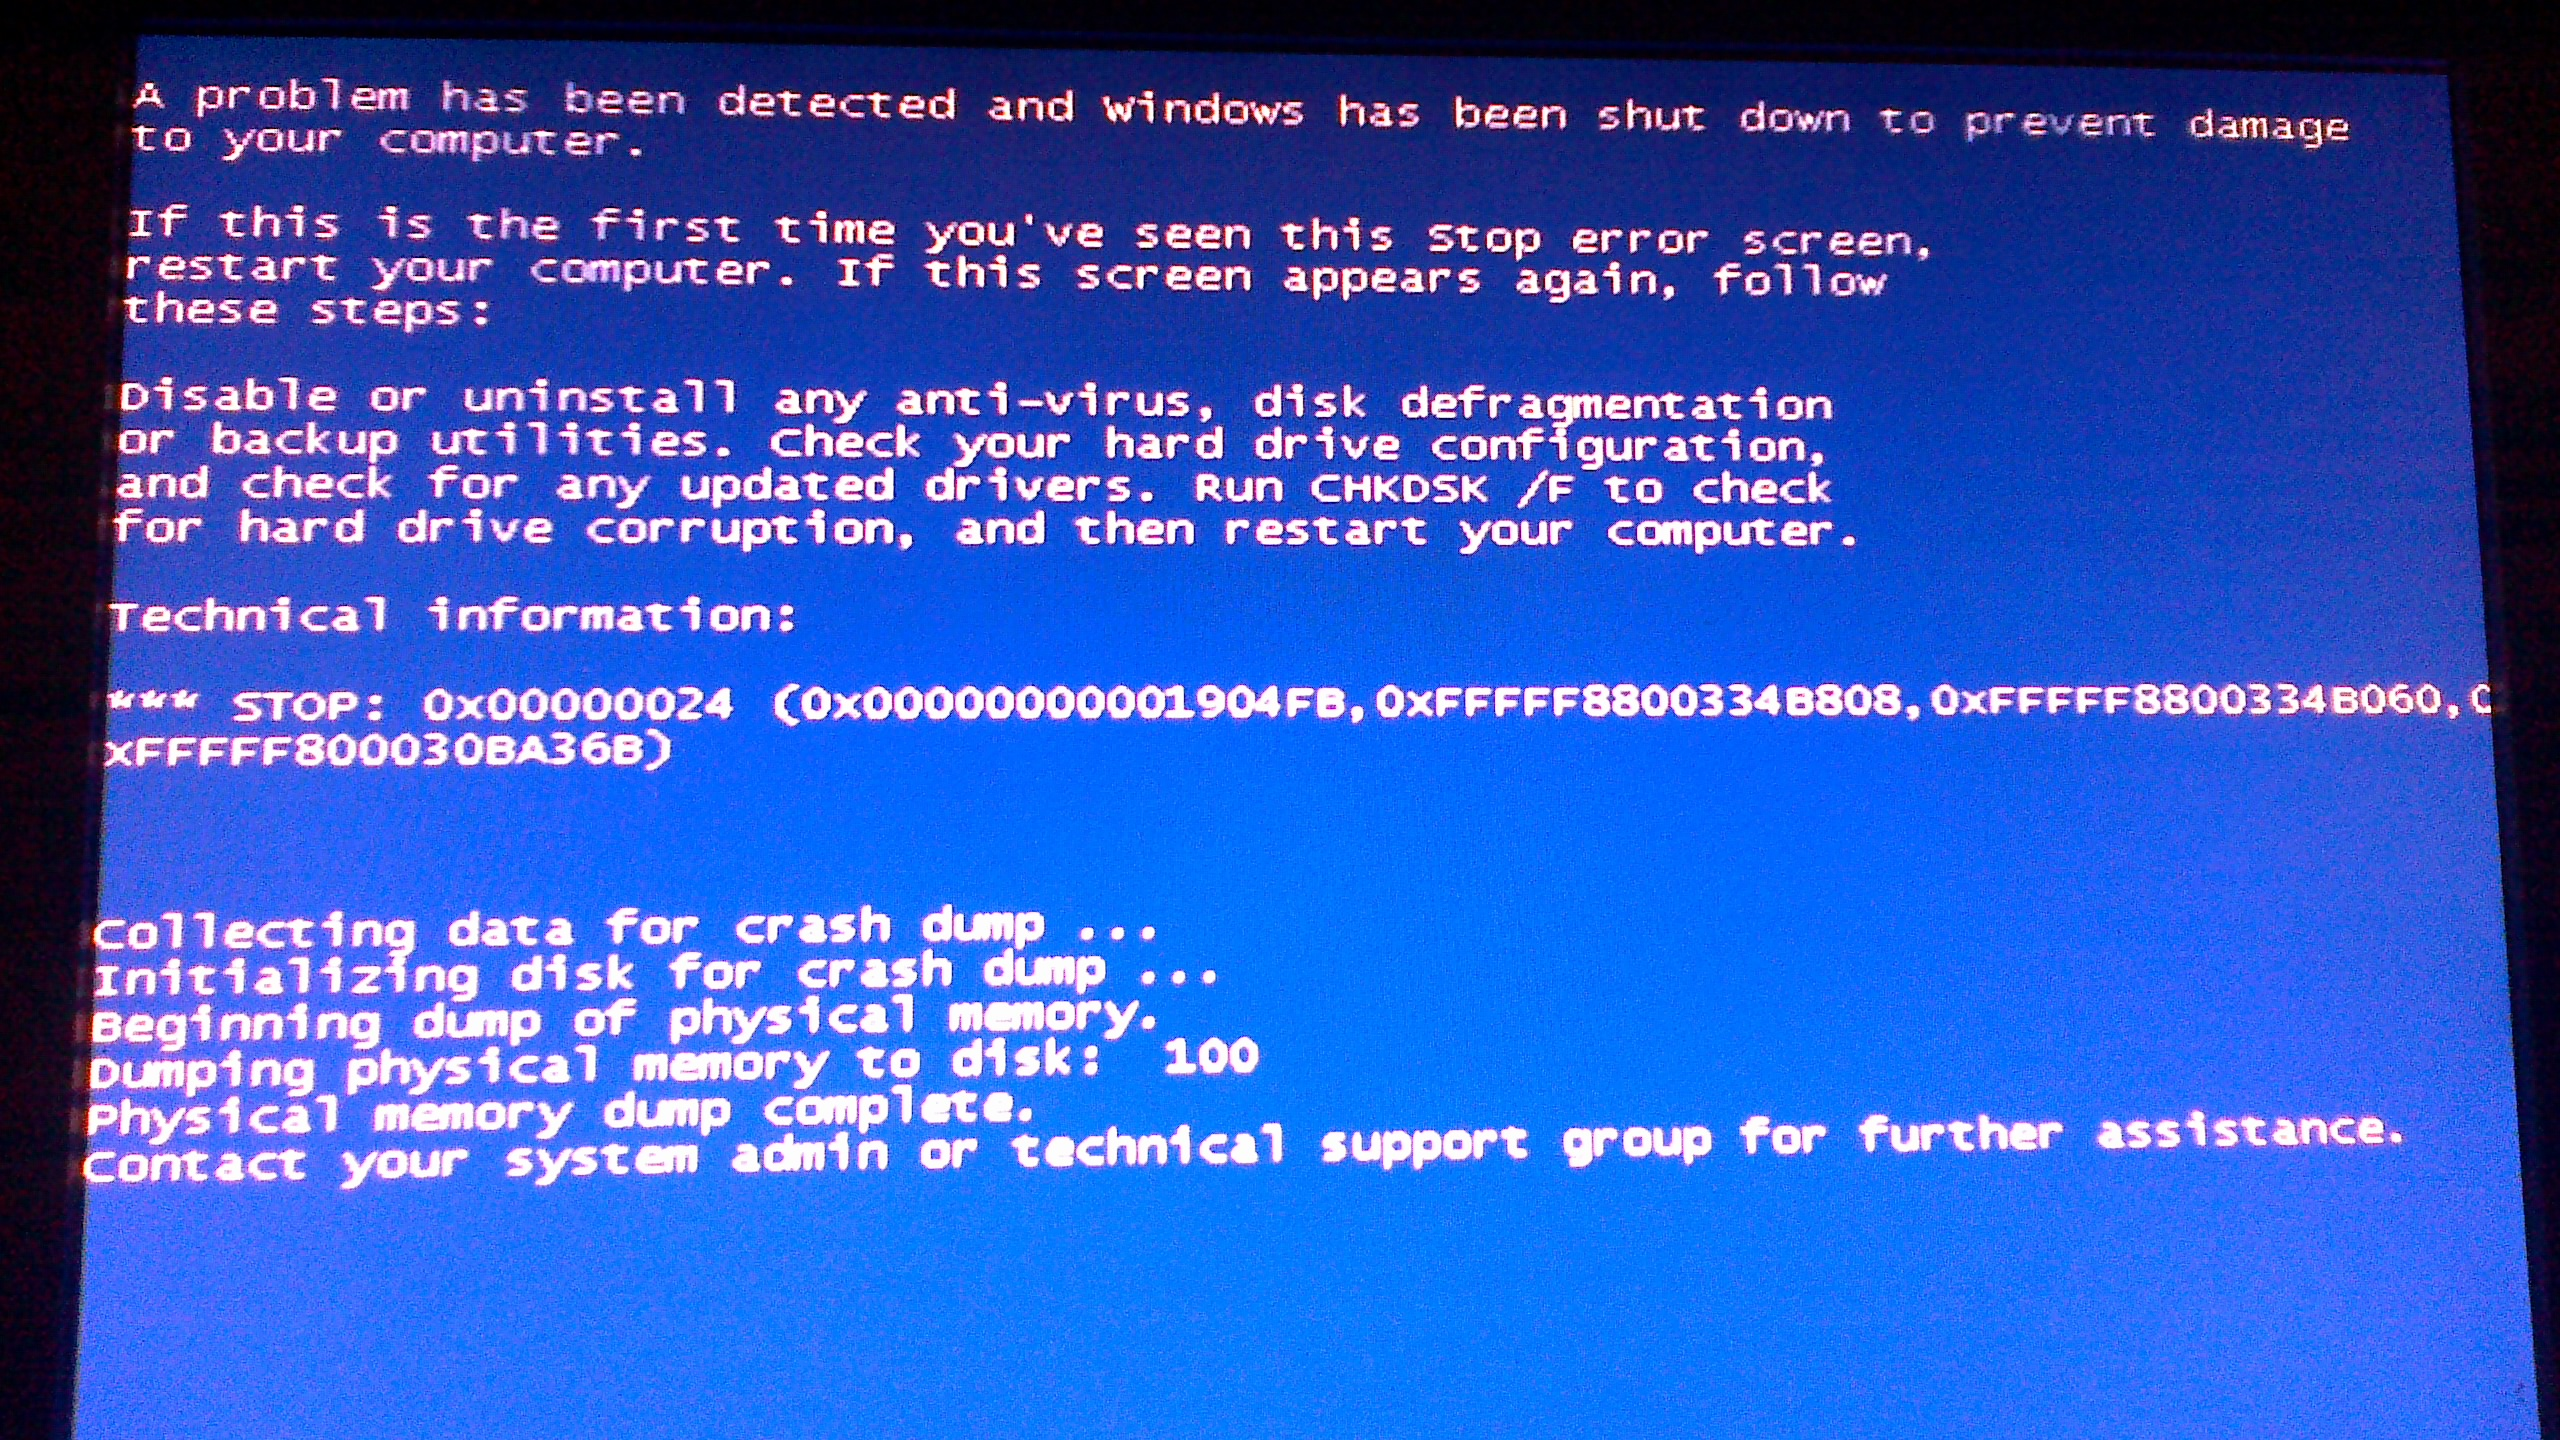 Windows 7 blue screen podczas uruchamiania